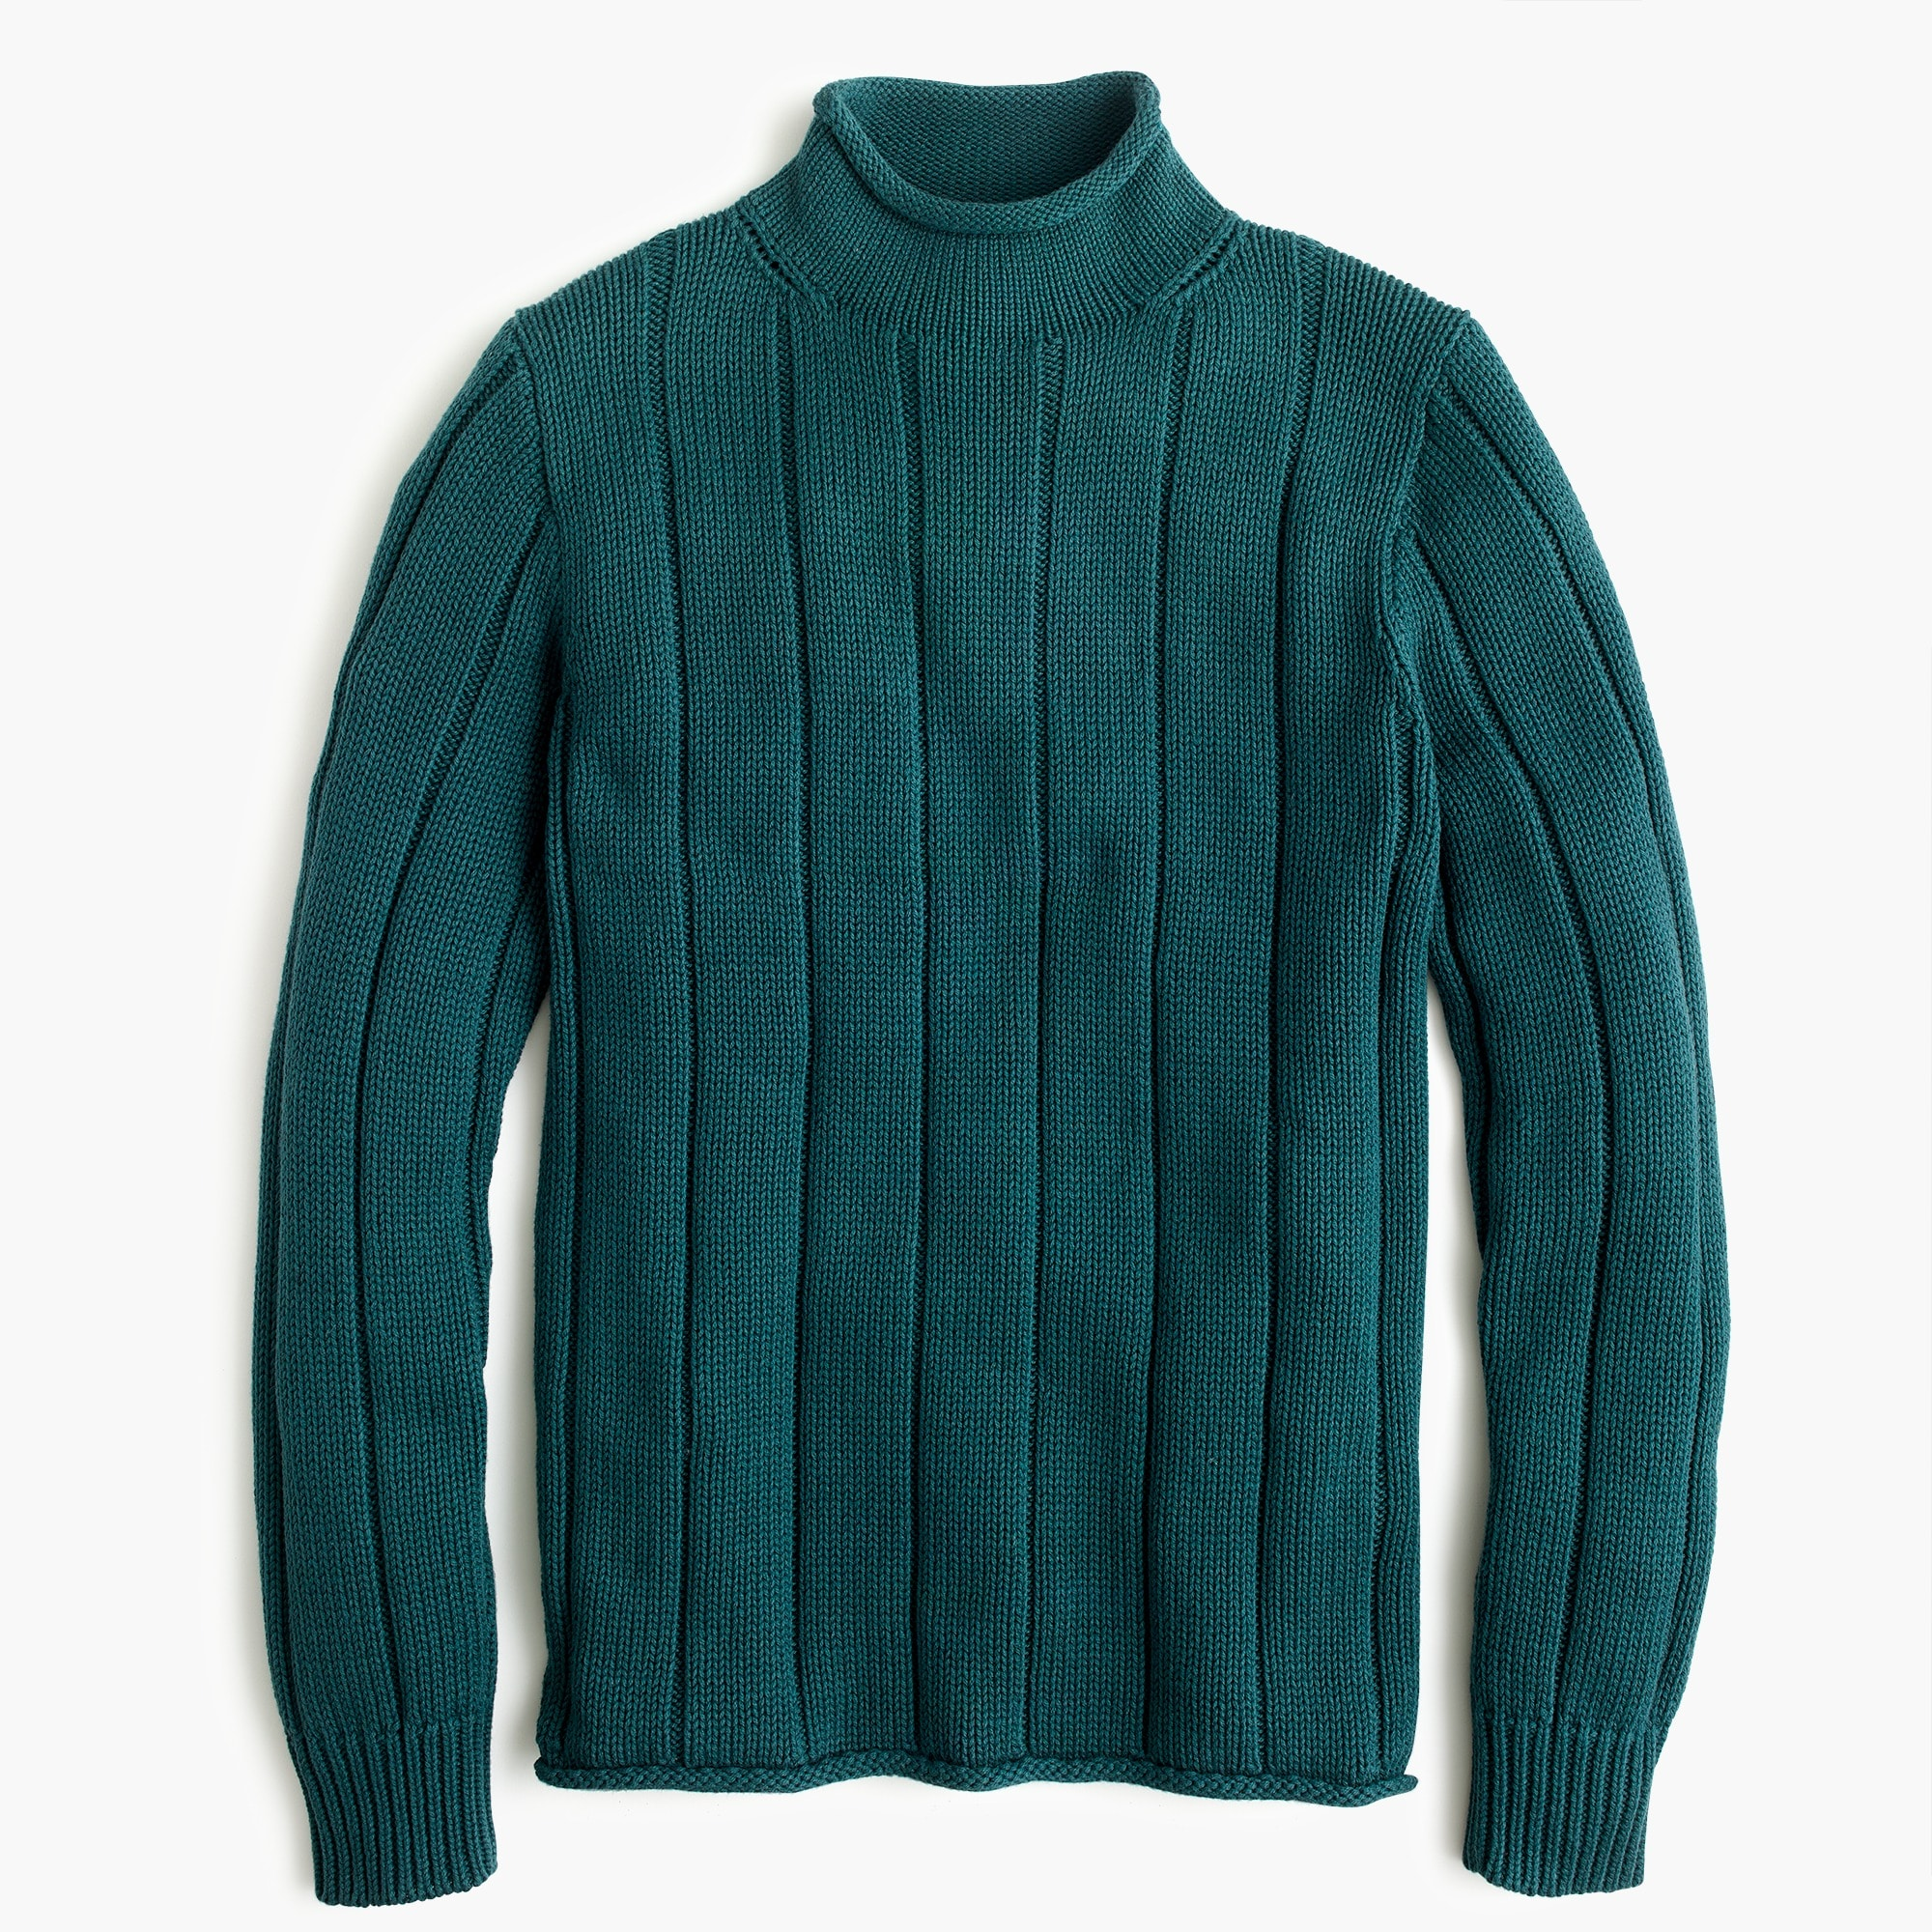 Image 4 for 1988 rollneck™ sweater in ribbed cotton